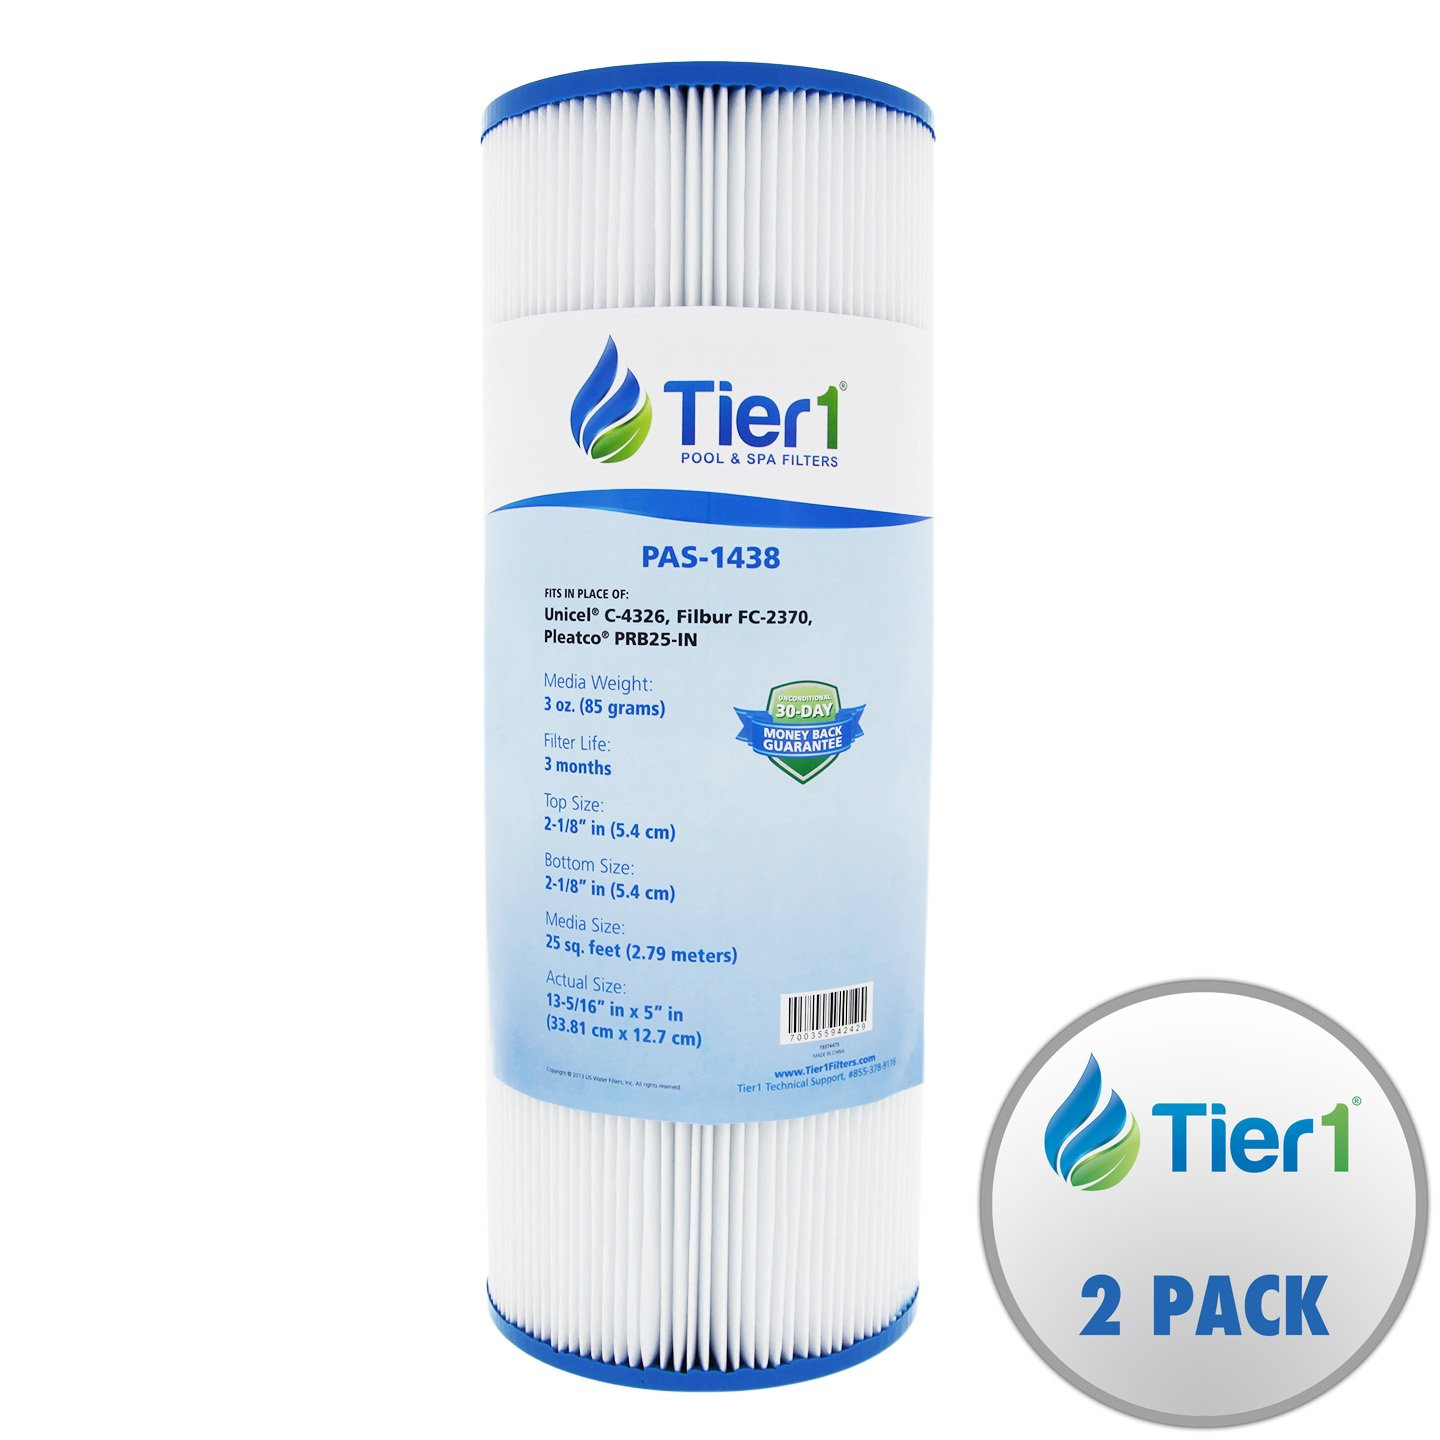 Tier1 Dynamic 17-2327, Pleatco PRB25-IN, 817-2500, R173429, Unicel C-4326, Filbur FC-2375 Comparable Replacement Spa Filter Cartridge